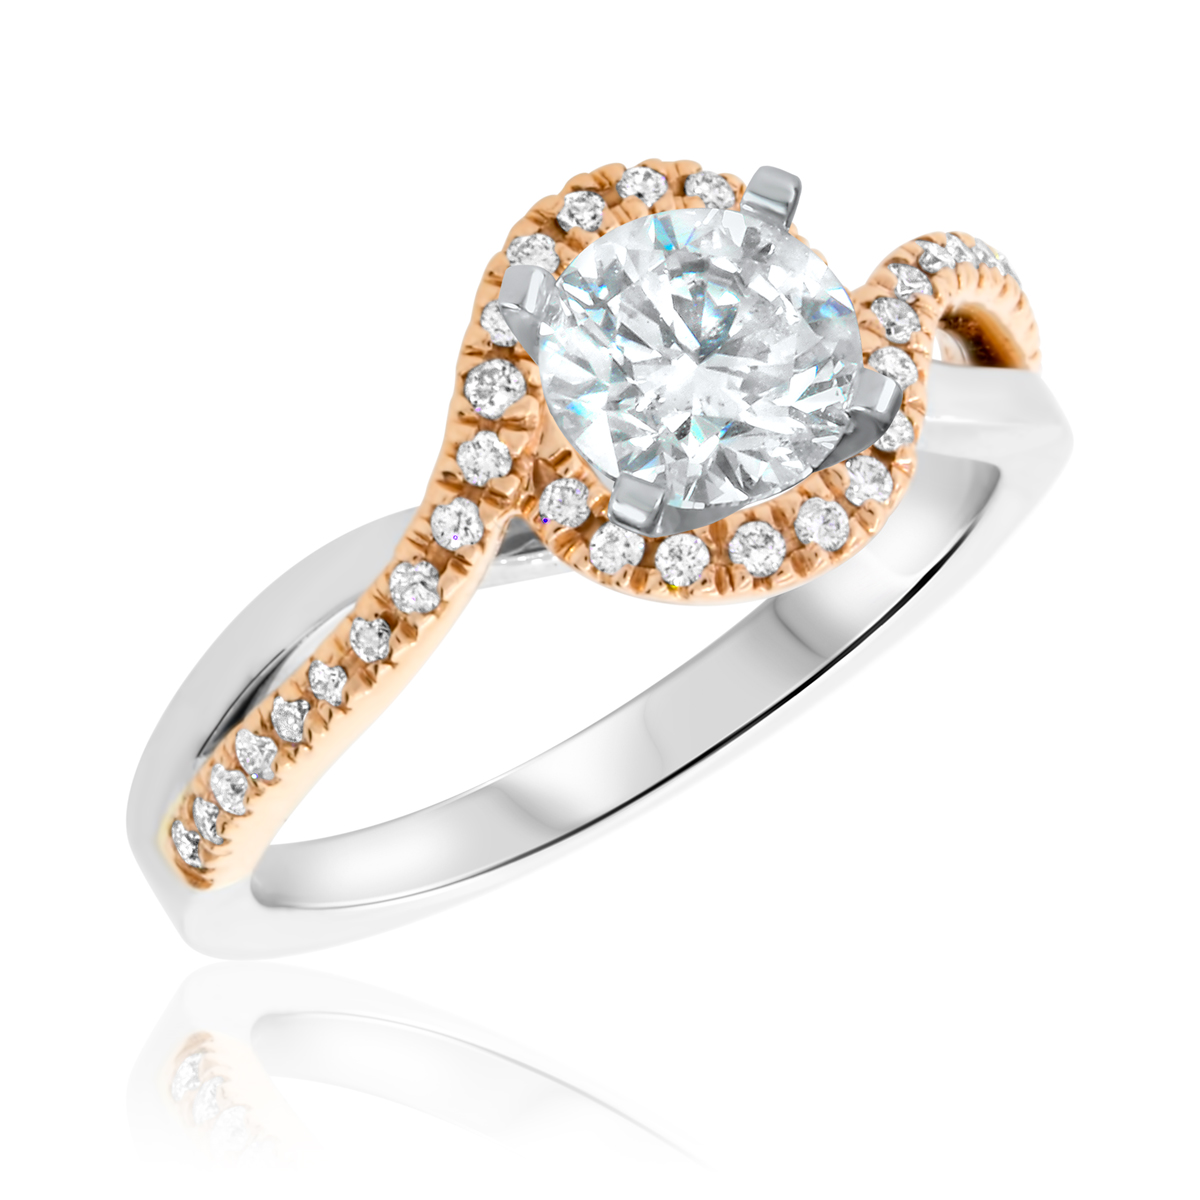 the gallery for gt engagement rings for women gold and